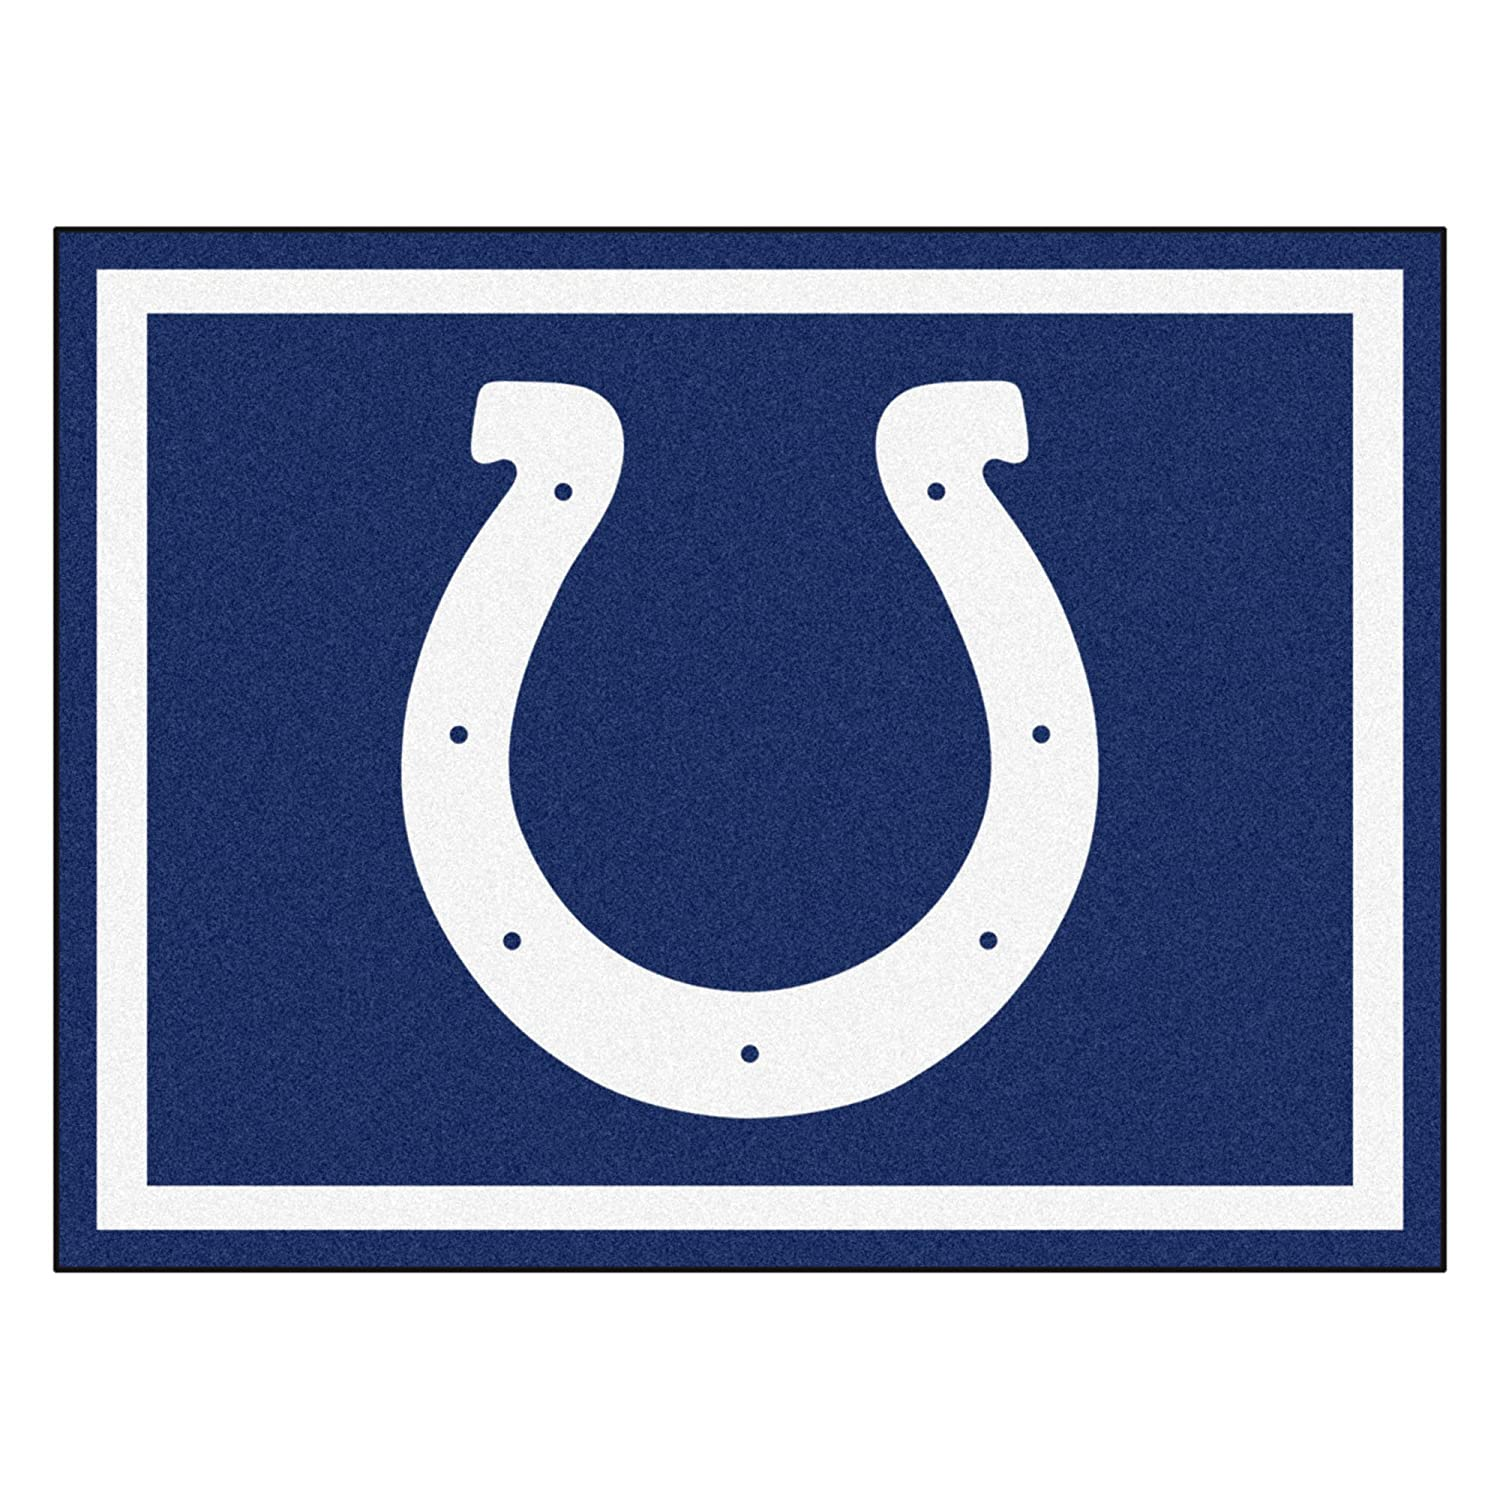 Fanmats 17484 NFL Indianapolis Colts Rug B015ZO05Q4  - -